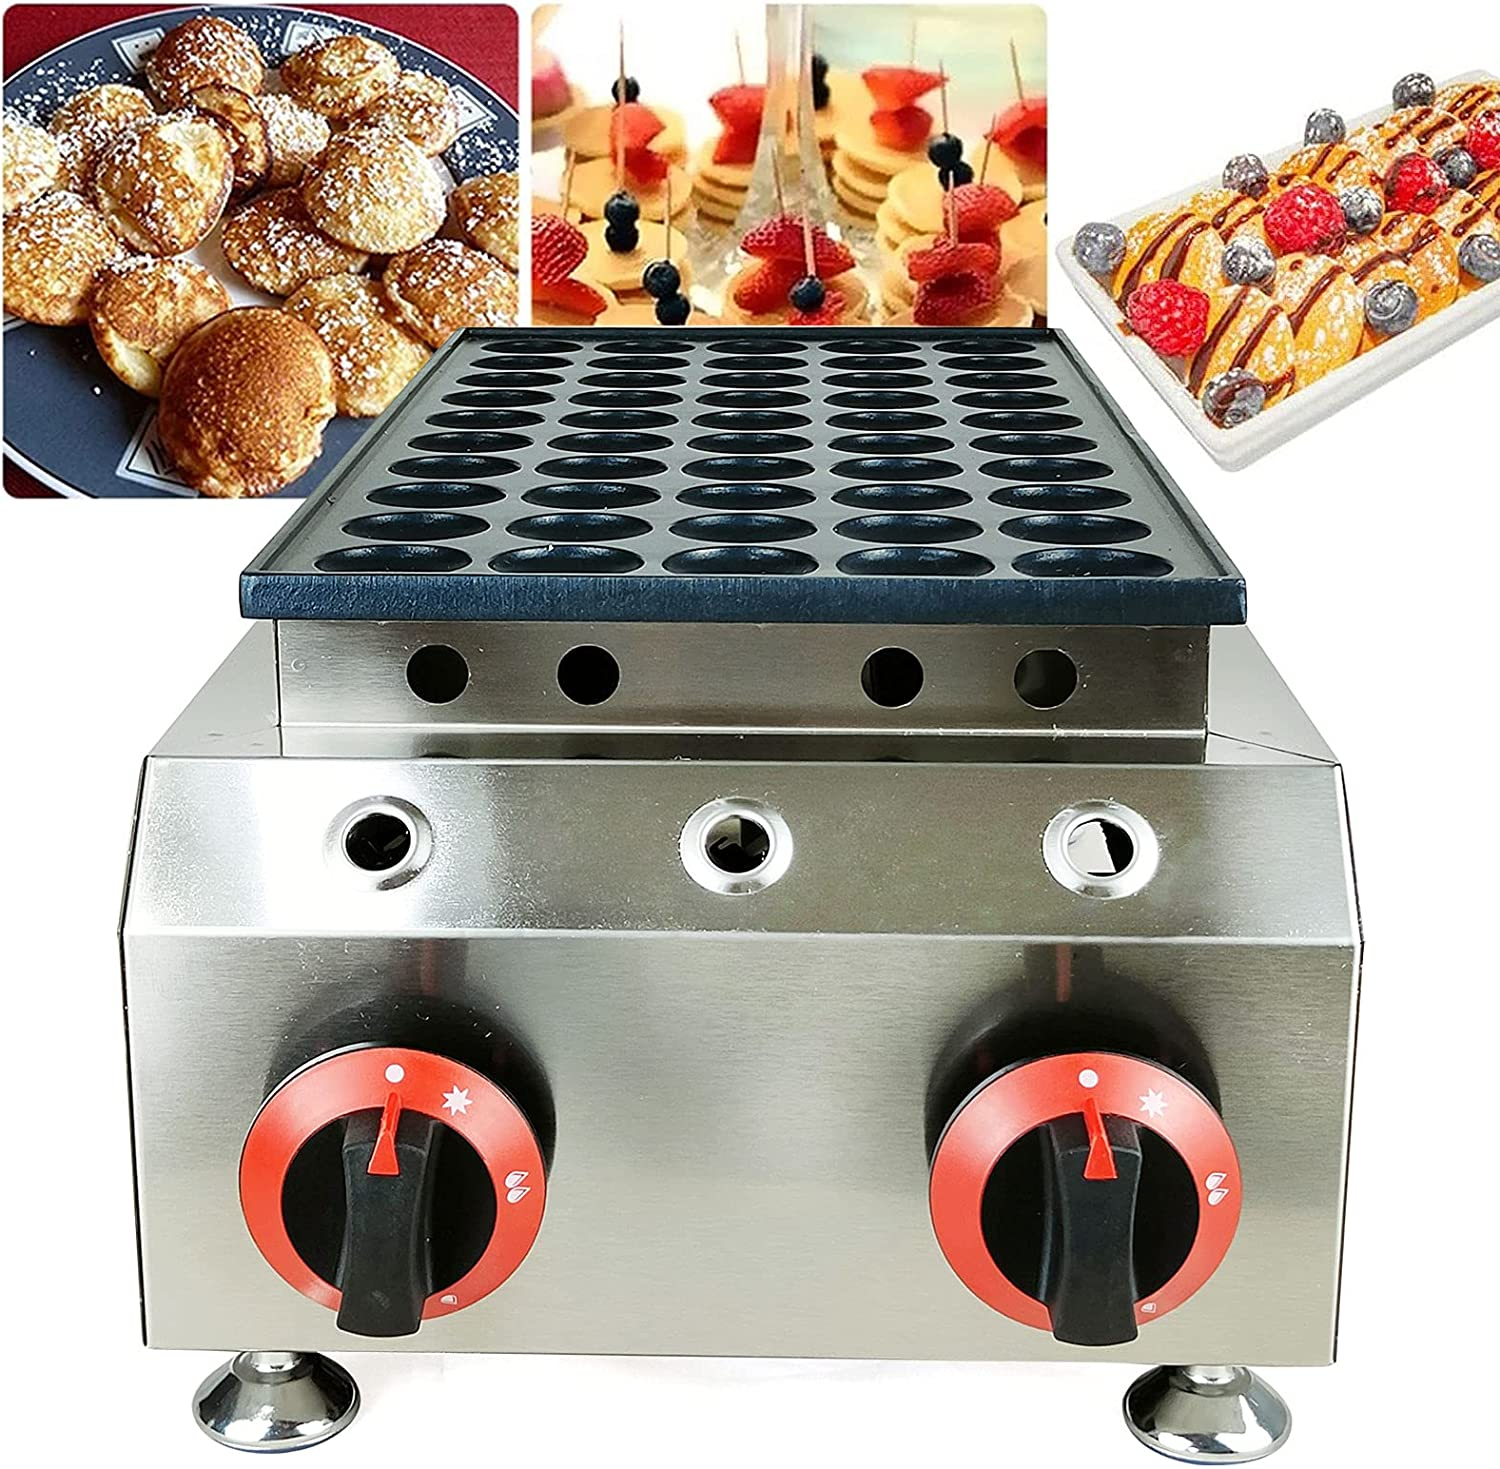 Commercial Dutch Don't miss the campaign Pancake Baker Tampa Mall Nonstick Waffle Maker Elect